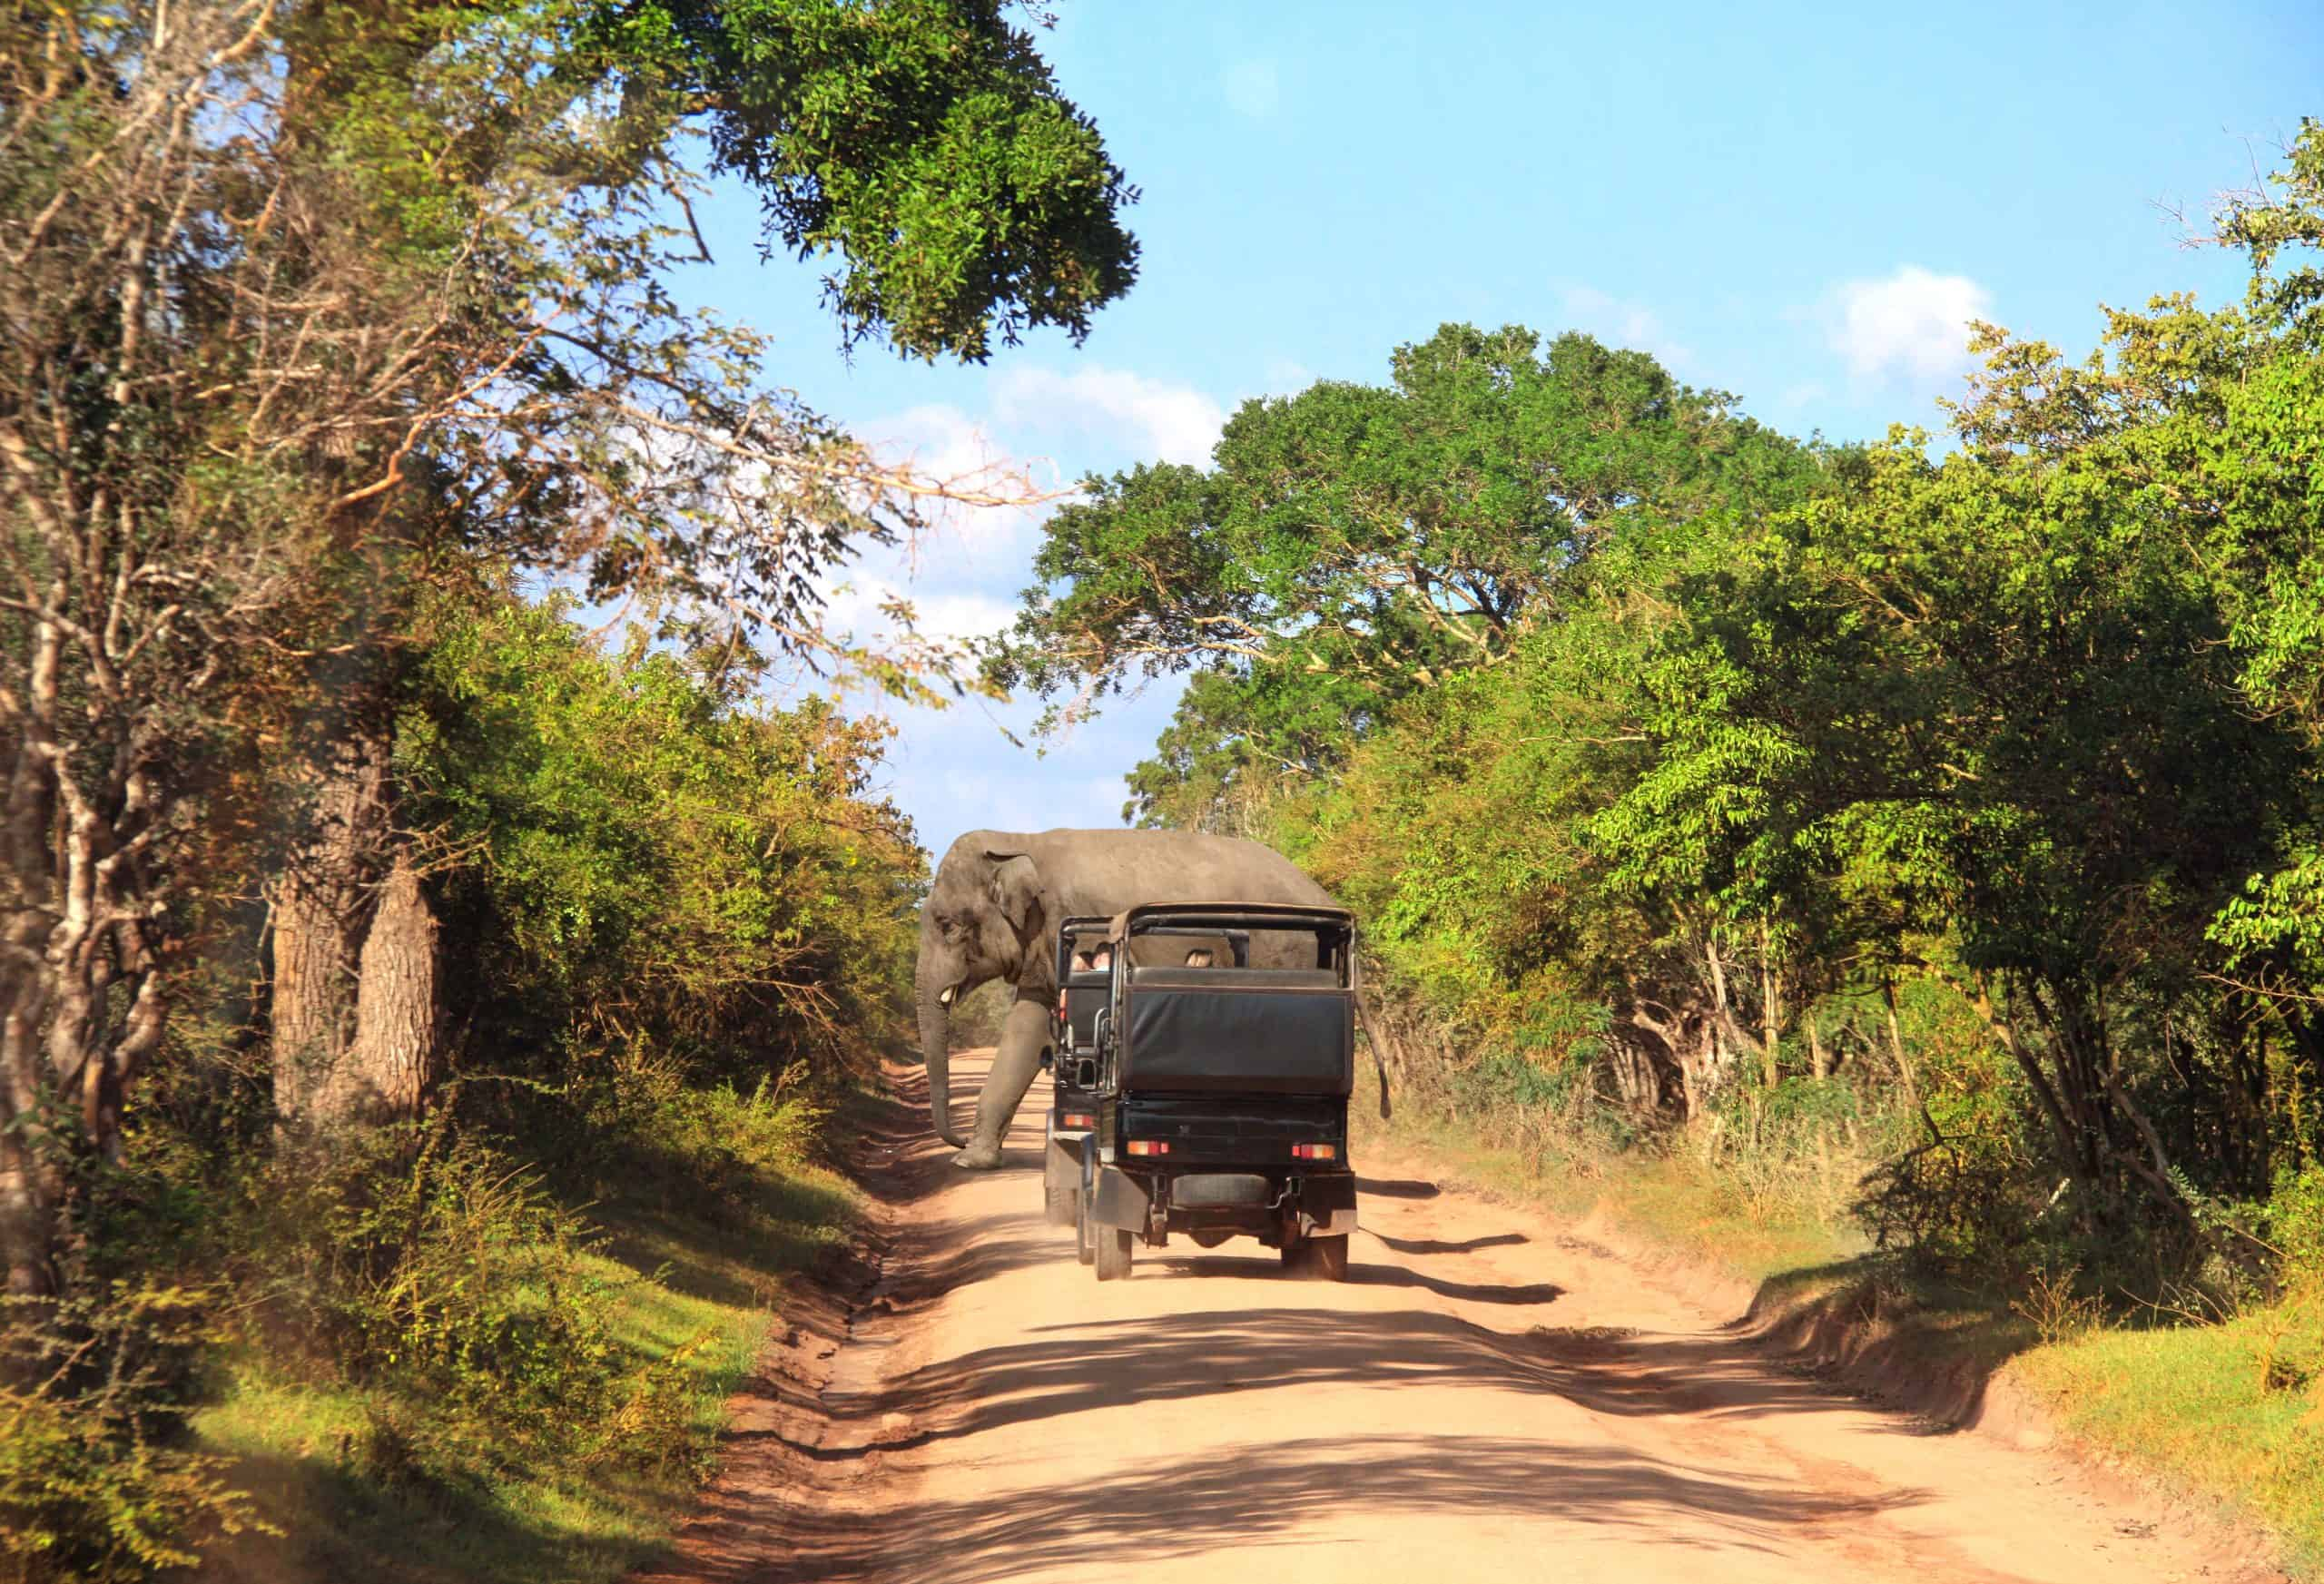 Elephant and tourists in cars and  on the dusty road in Yala National Park, a top place to visit in Sri Lanka